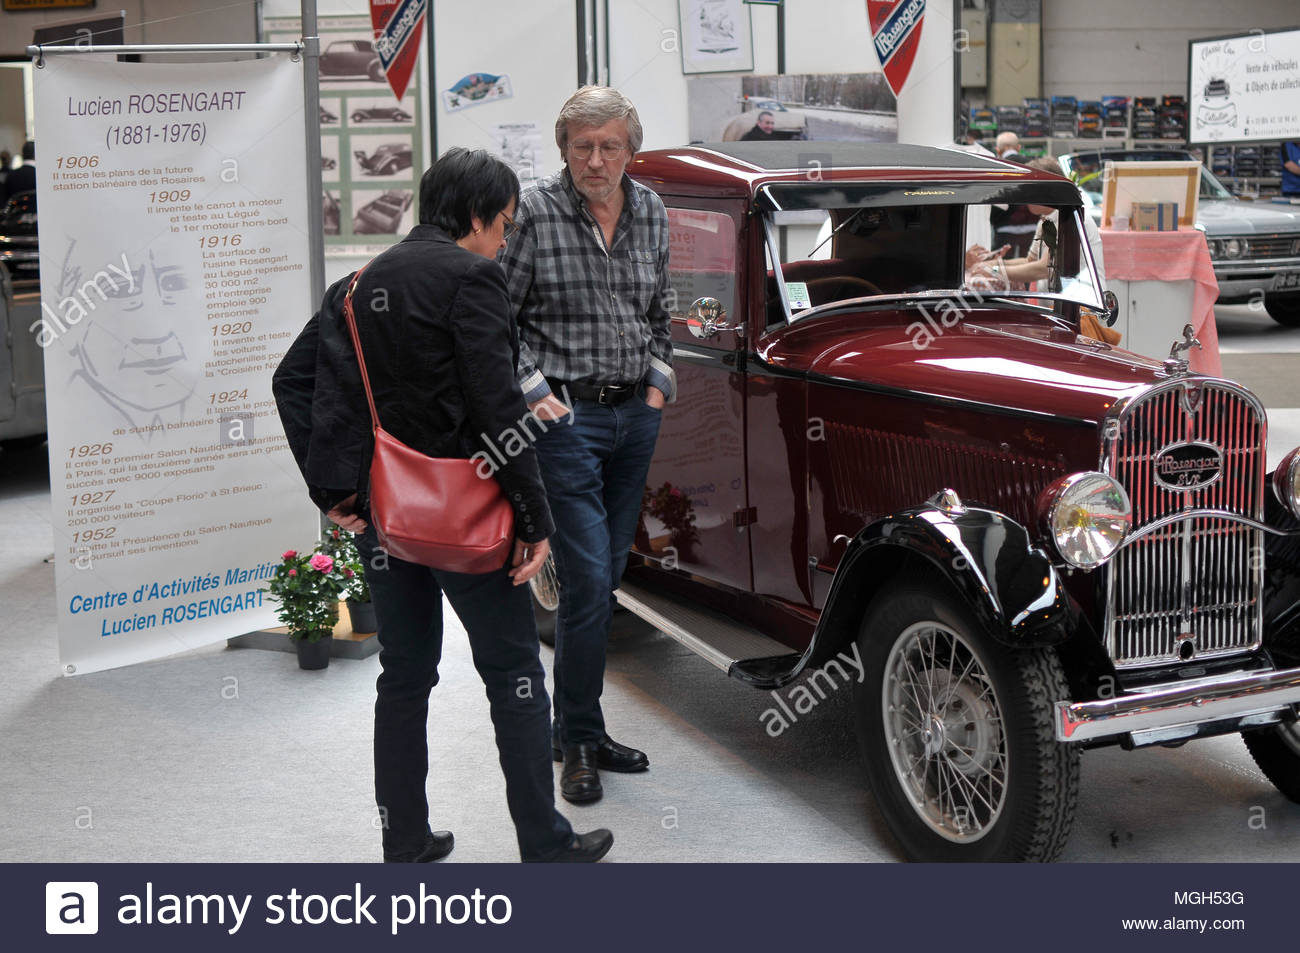 automobile motorcycle show - Salon Auto moto - Stock Image